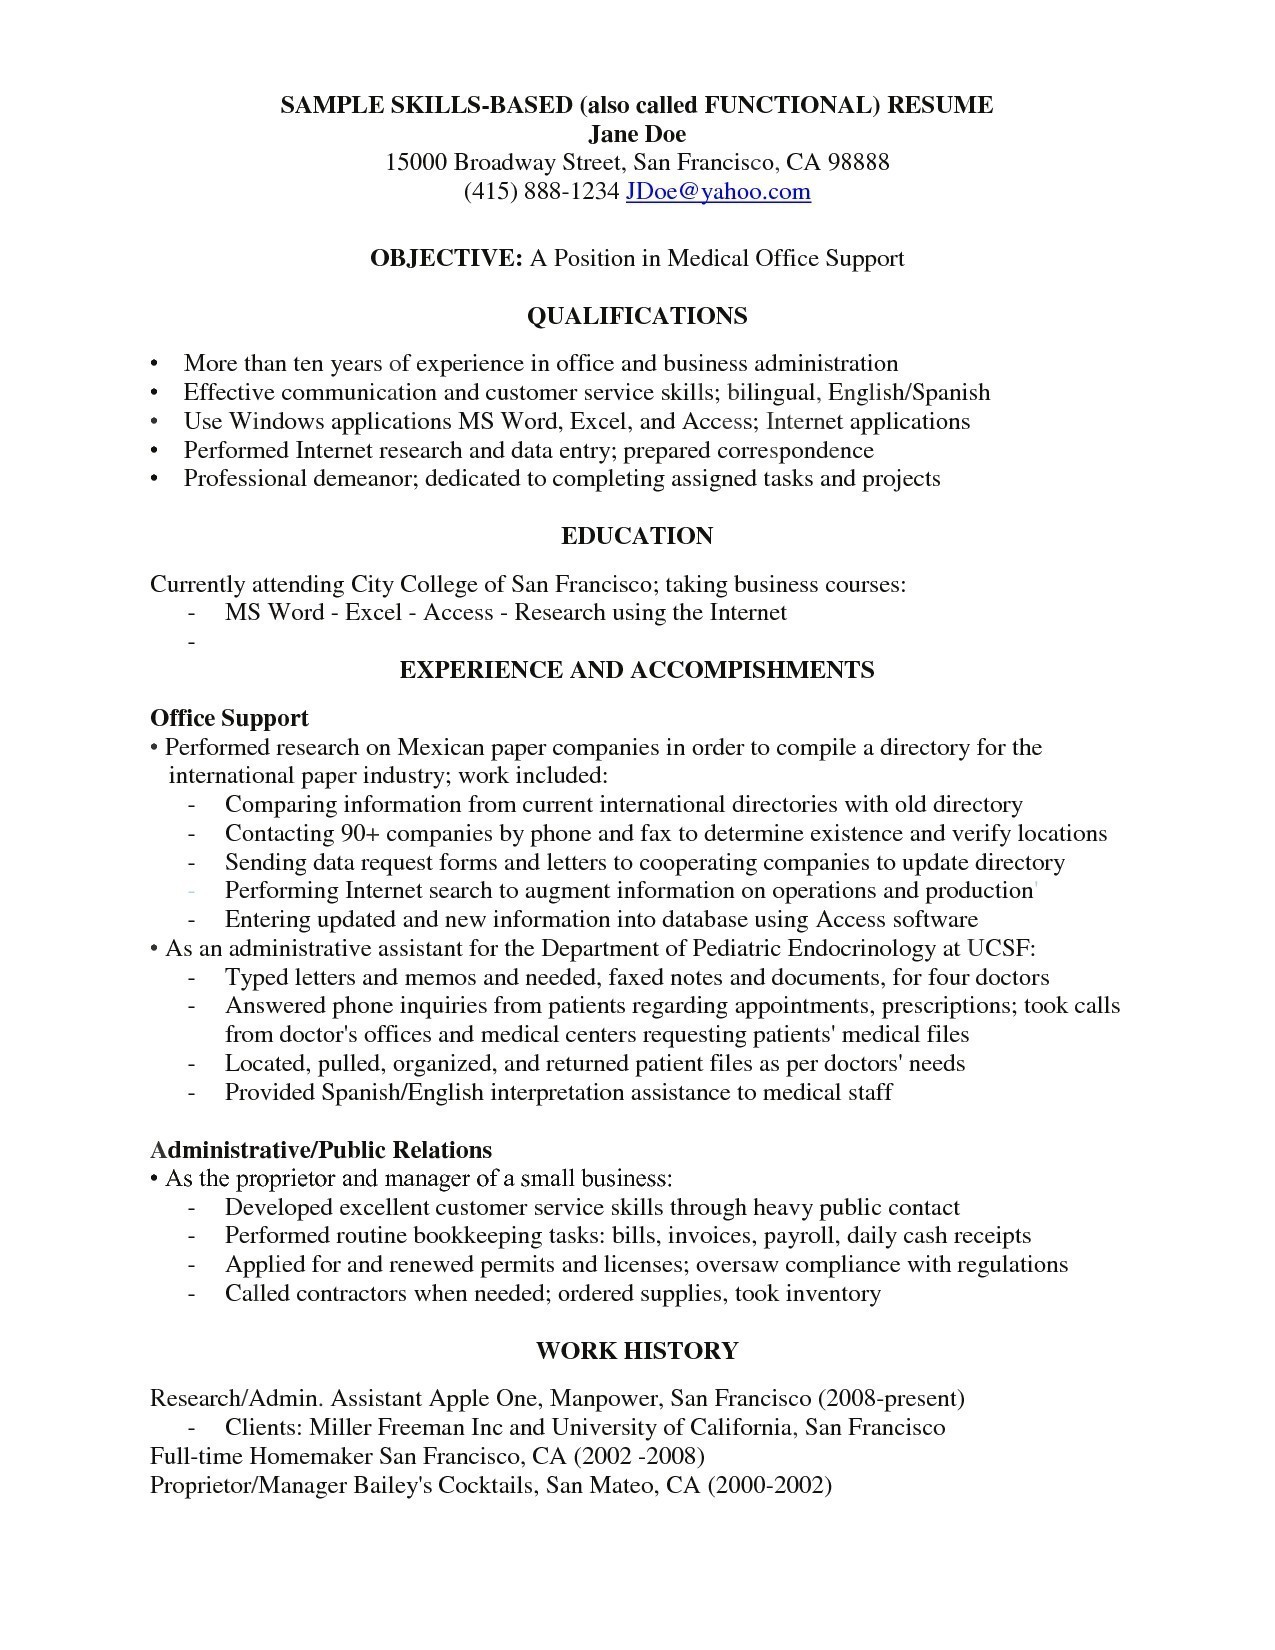 caregiver resume objective example-Caregiver Resume Objective 6-e